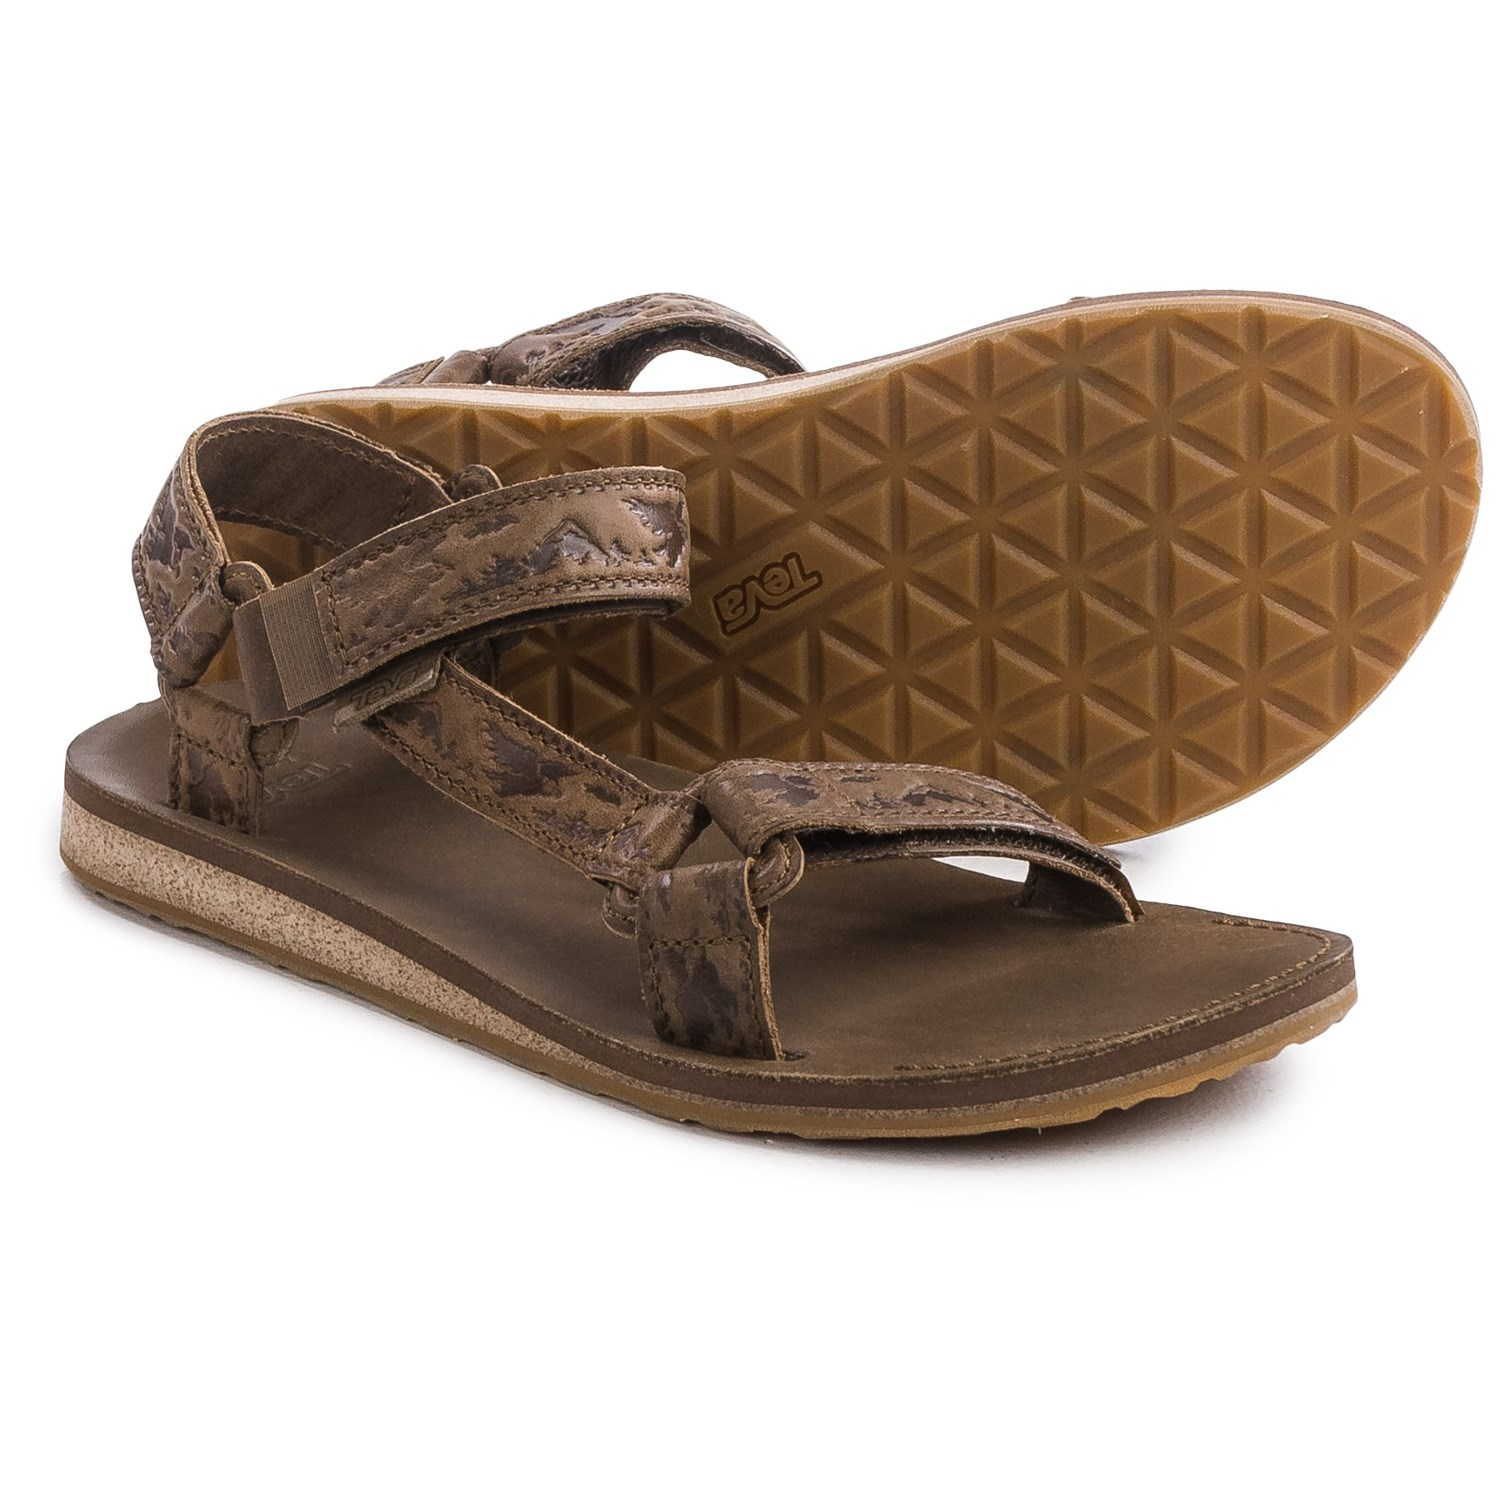 teva original universal crafted leather sandals for men